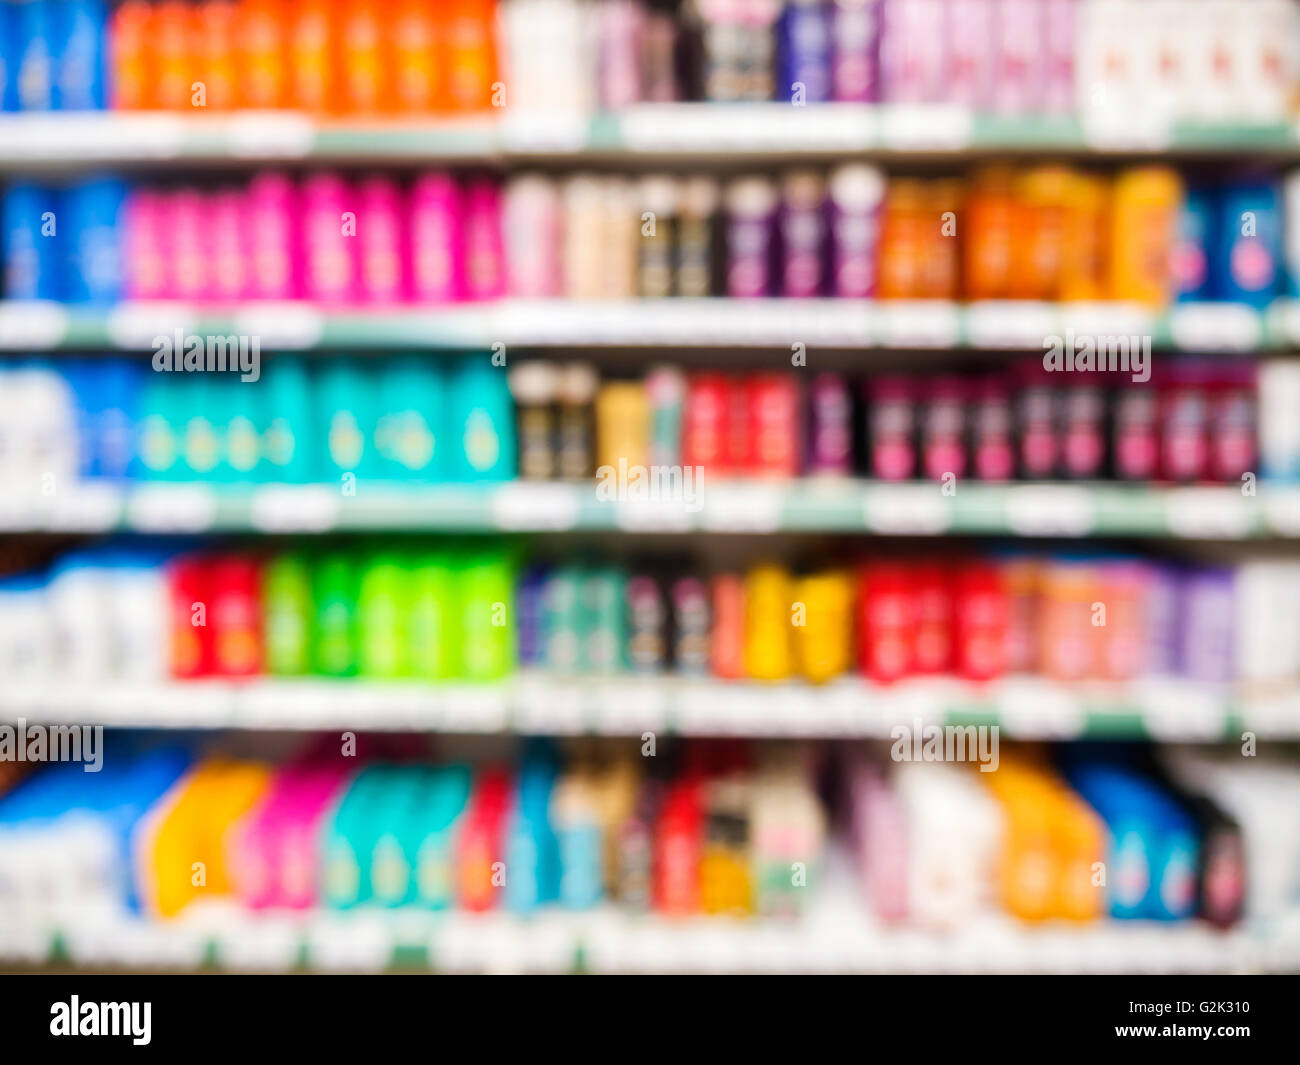 Shampoo Shelf Stock Photos Shampoo Shelf Stock Images Alamy